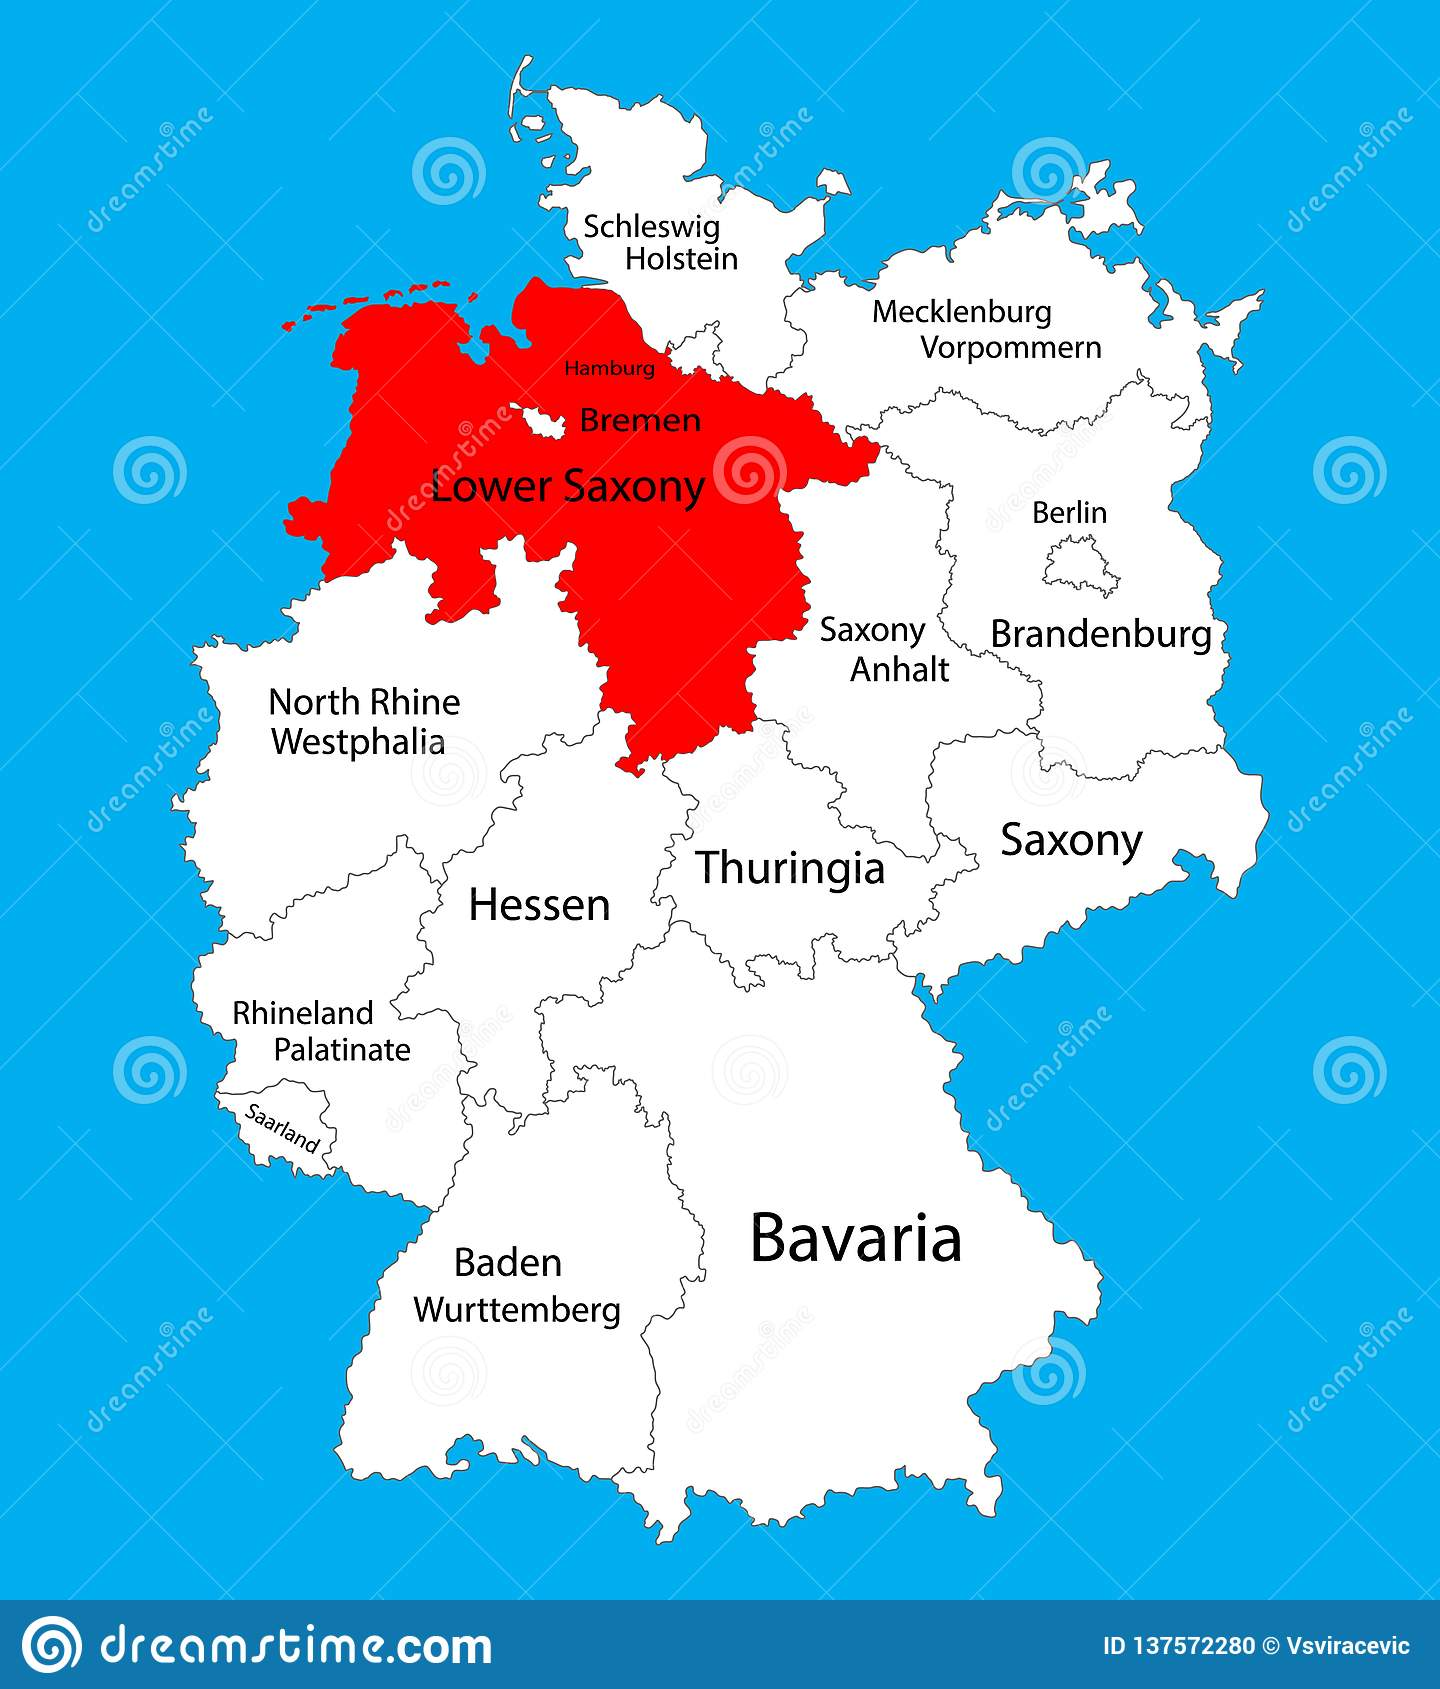 Germany Map States.Niedersachsen Lower Saxony State Map Germany Vector Map